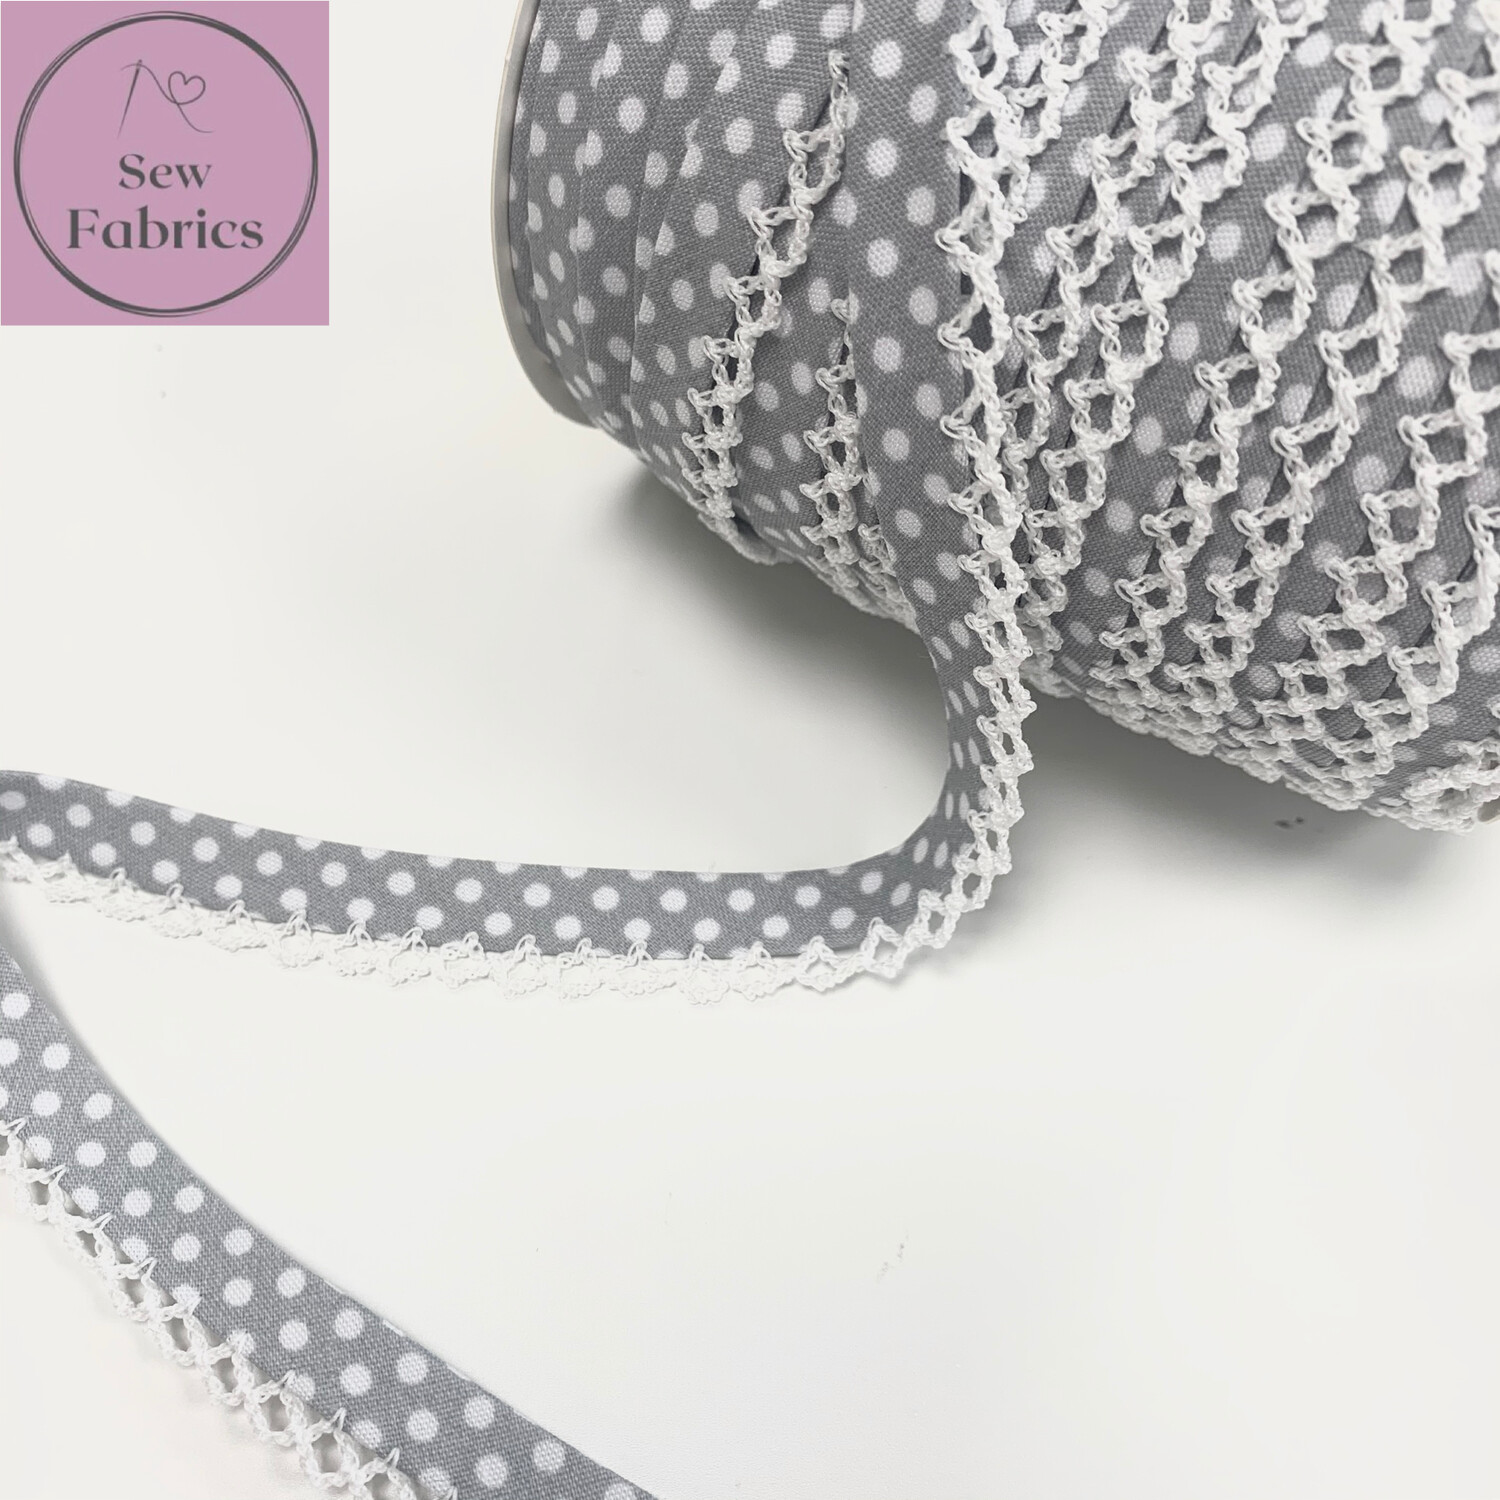 12mm Grey with White Polka Dots Pre-Folded Bias Binding with Lace Edge.